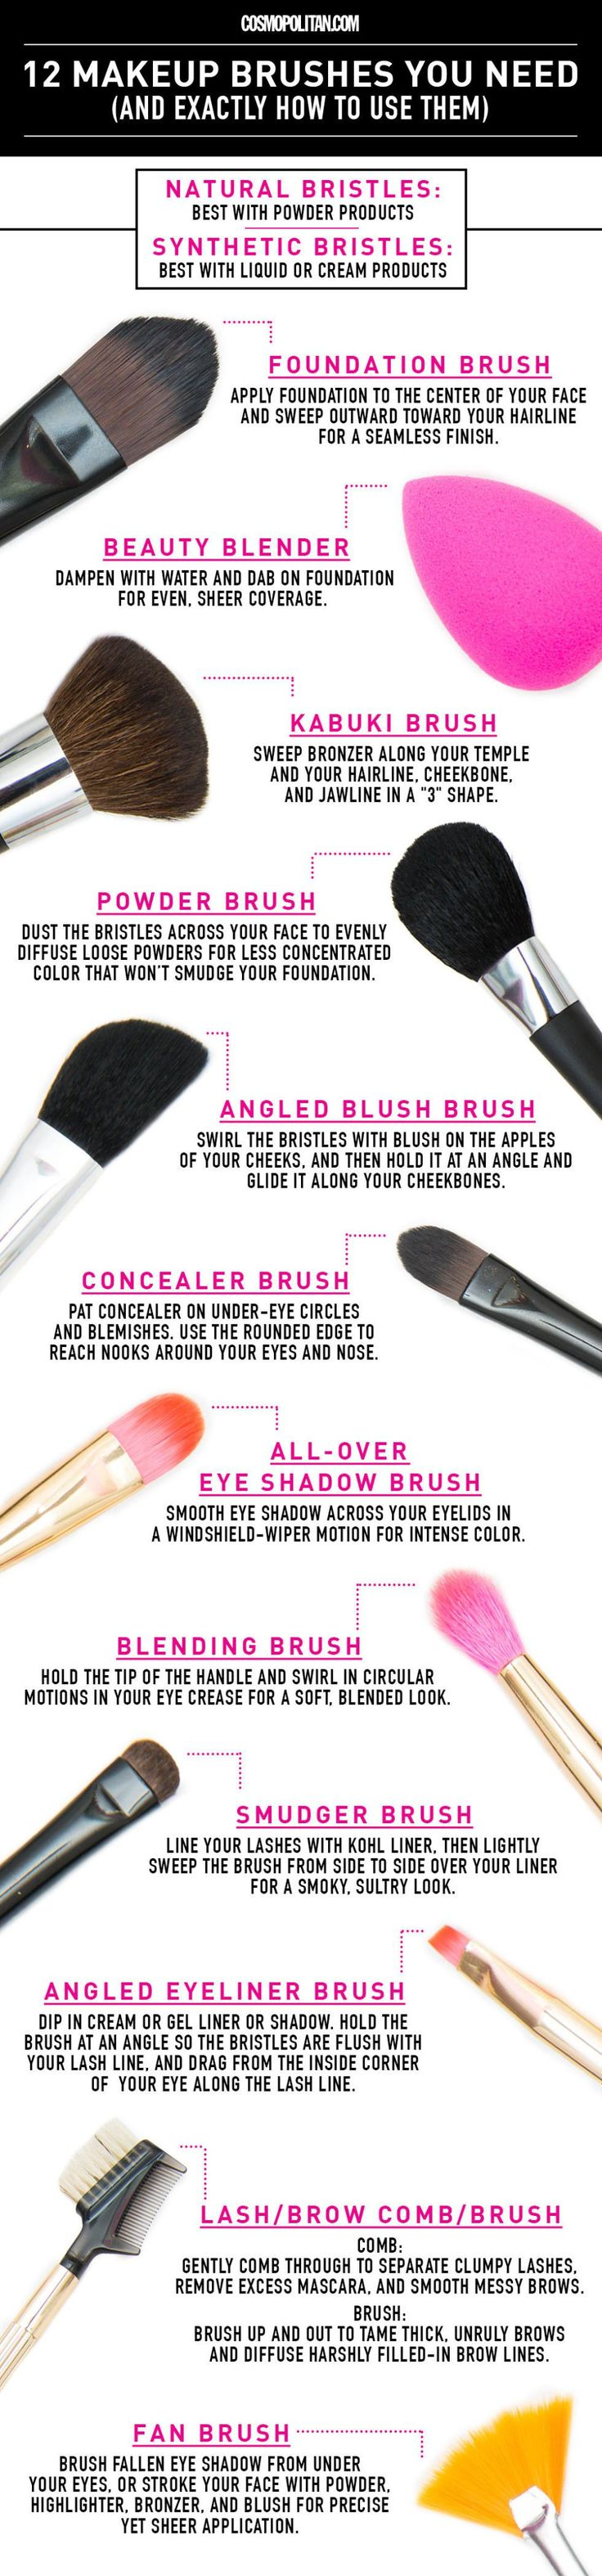 Make-up Brushes to own